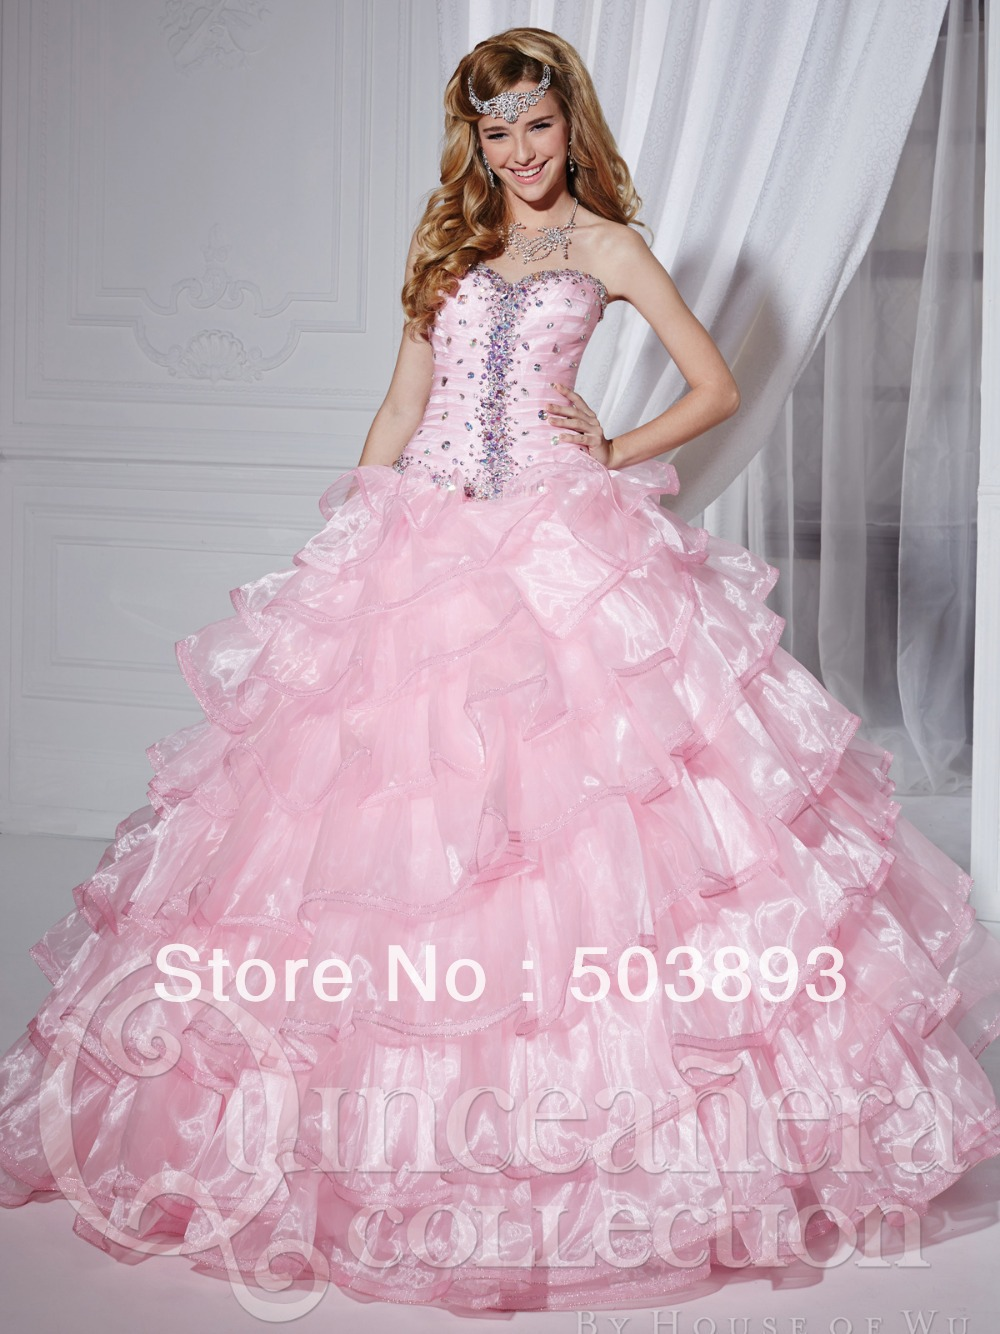 Aliexpress.com : Buy Free shipping masquerade ball gowns ruffles ...